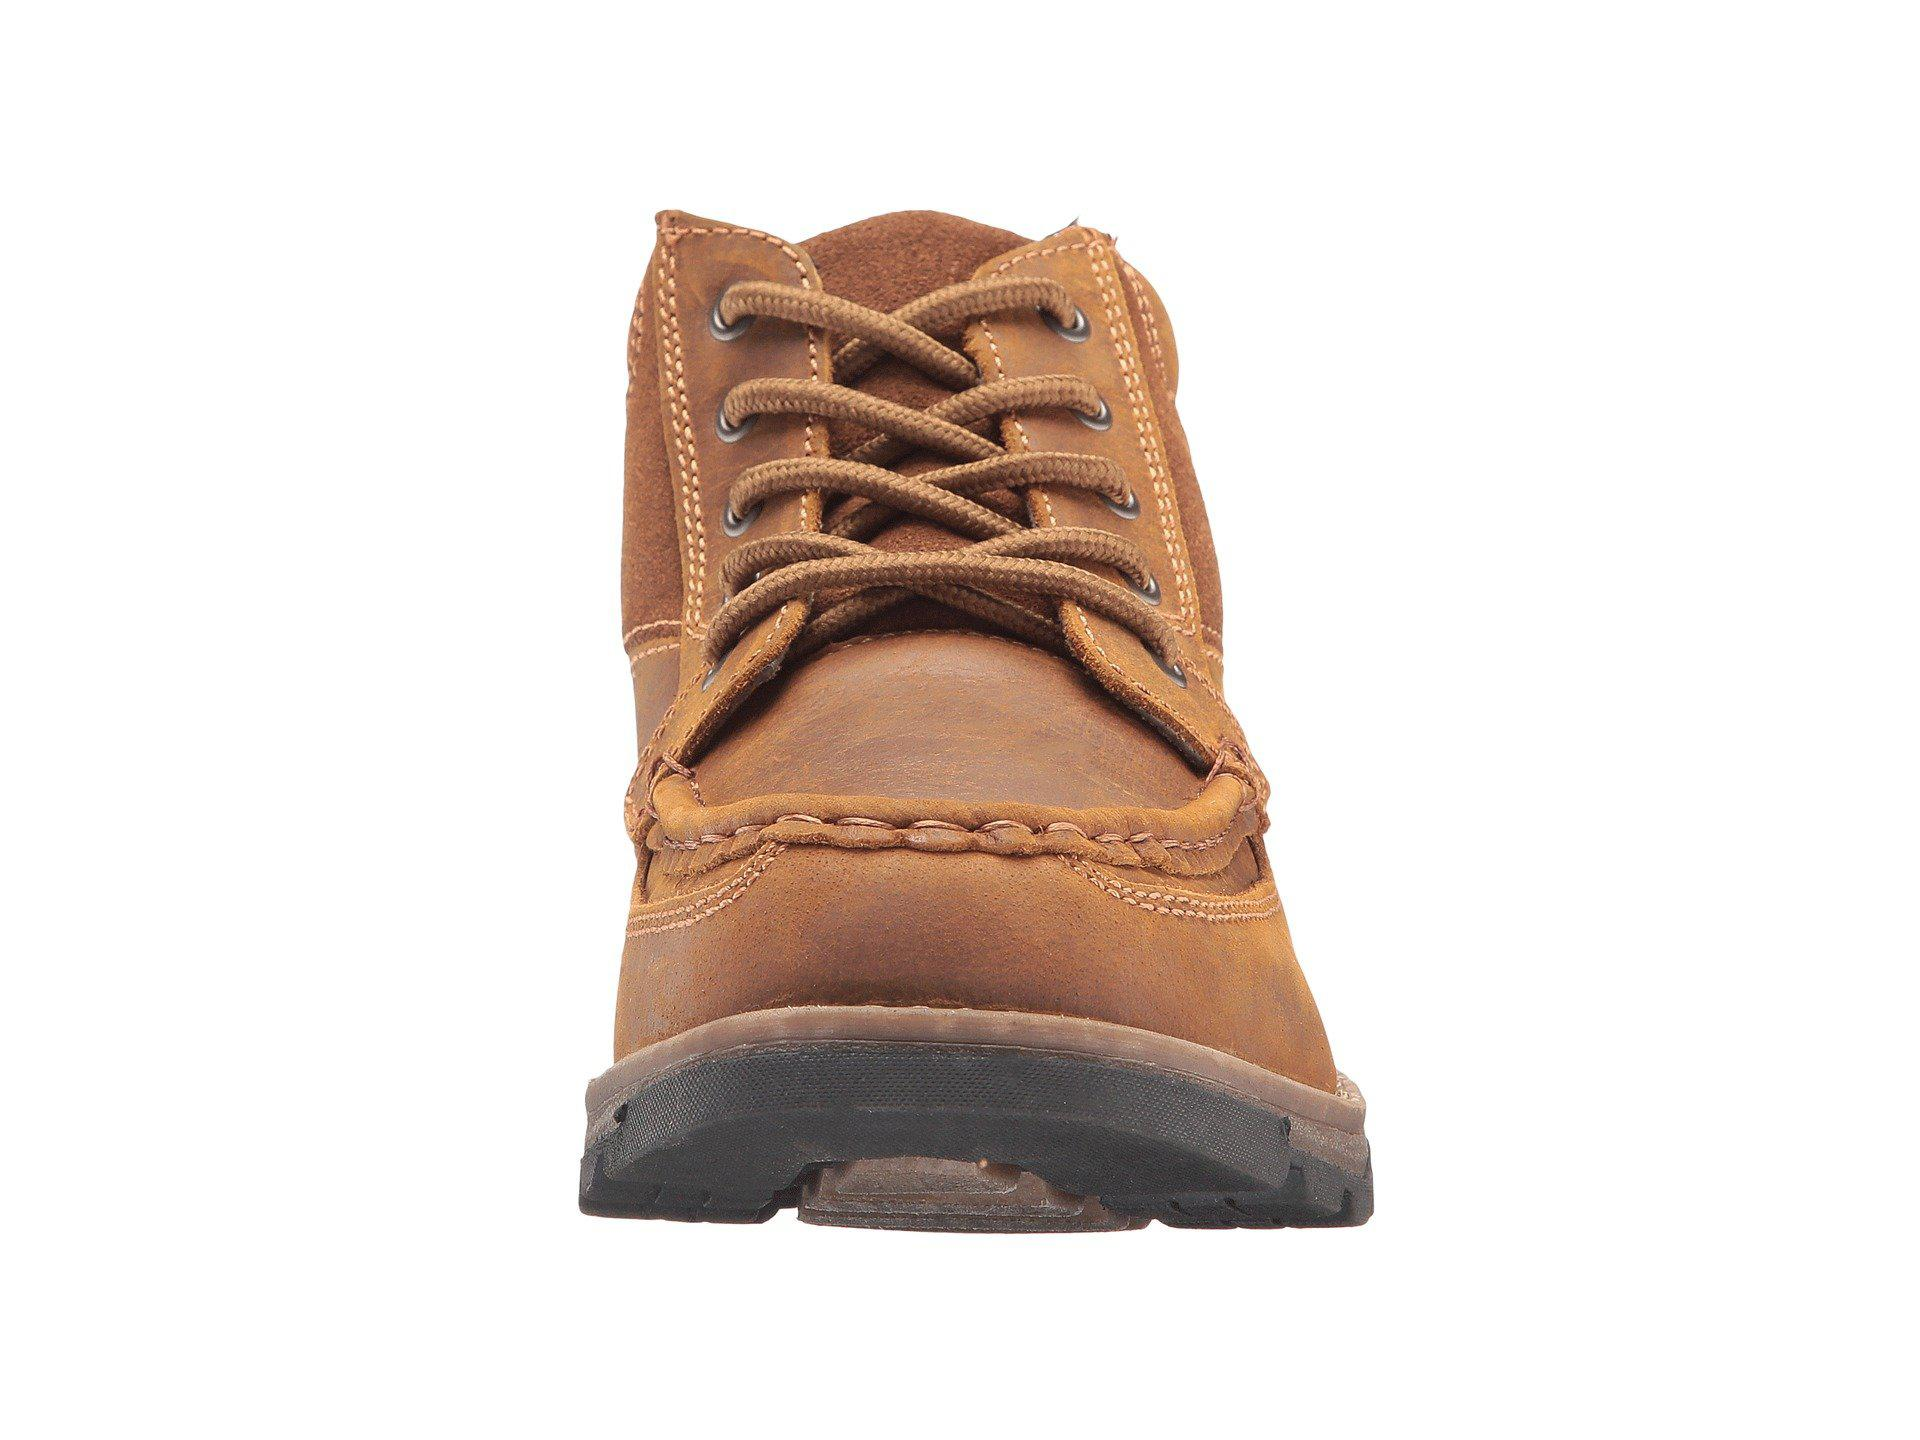 Nunn Bush Leather Pershing Boot All Terrain Comfort Camel